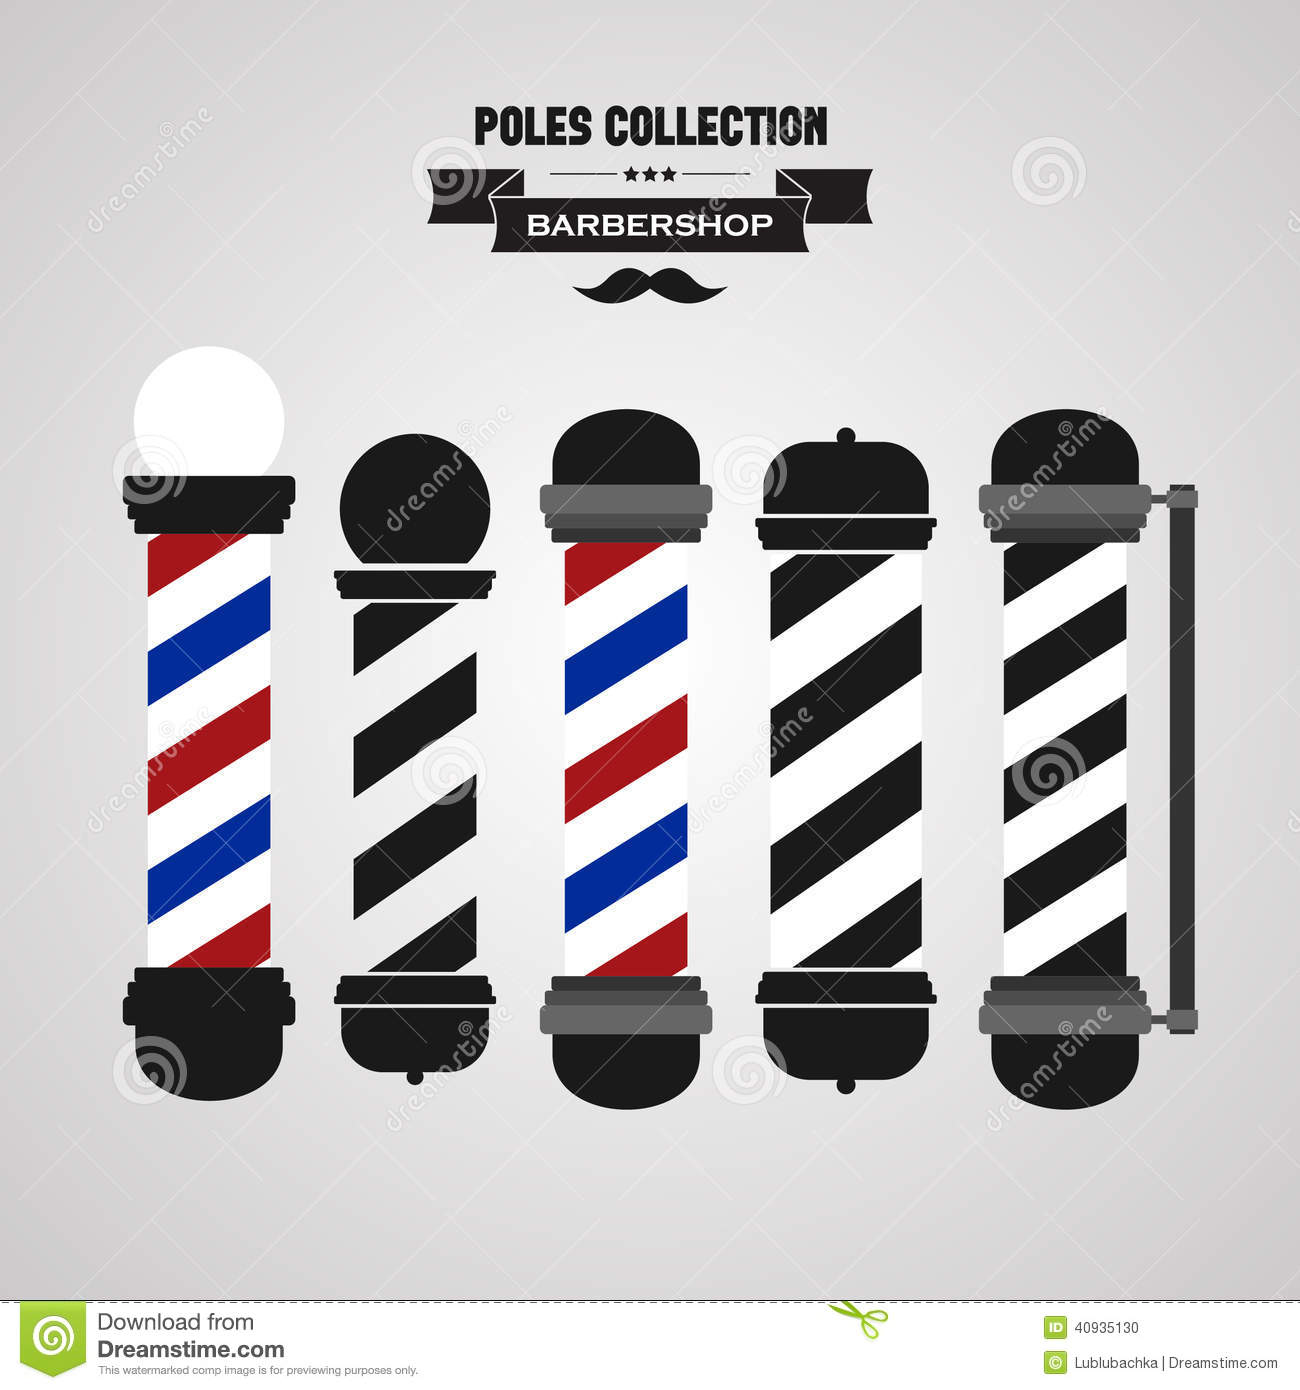 Antique barber shop sign - Barber Shop Vintage Pole Icons Set Stock Photo